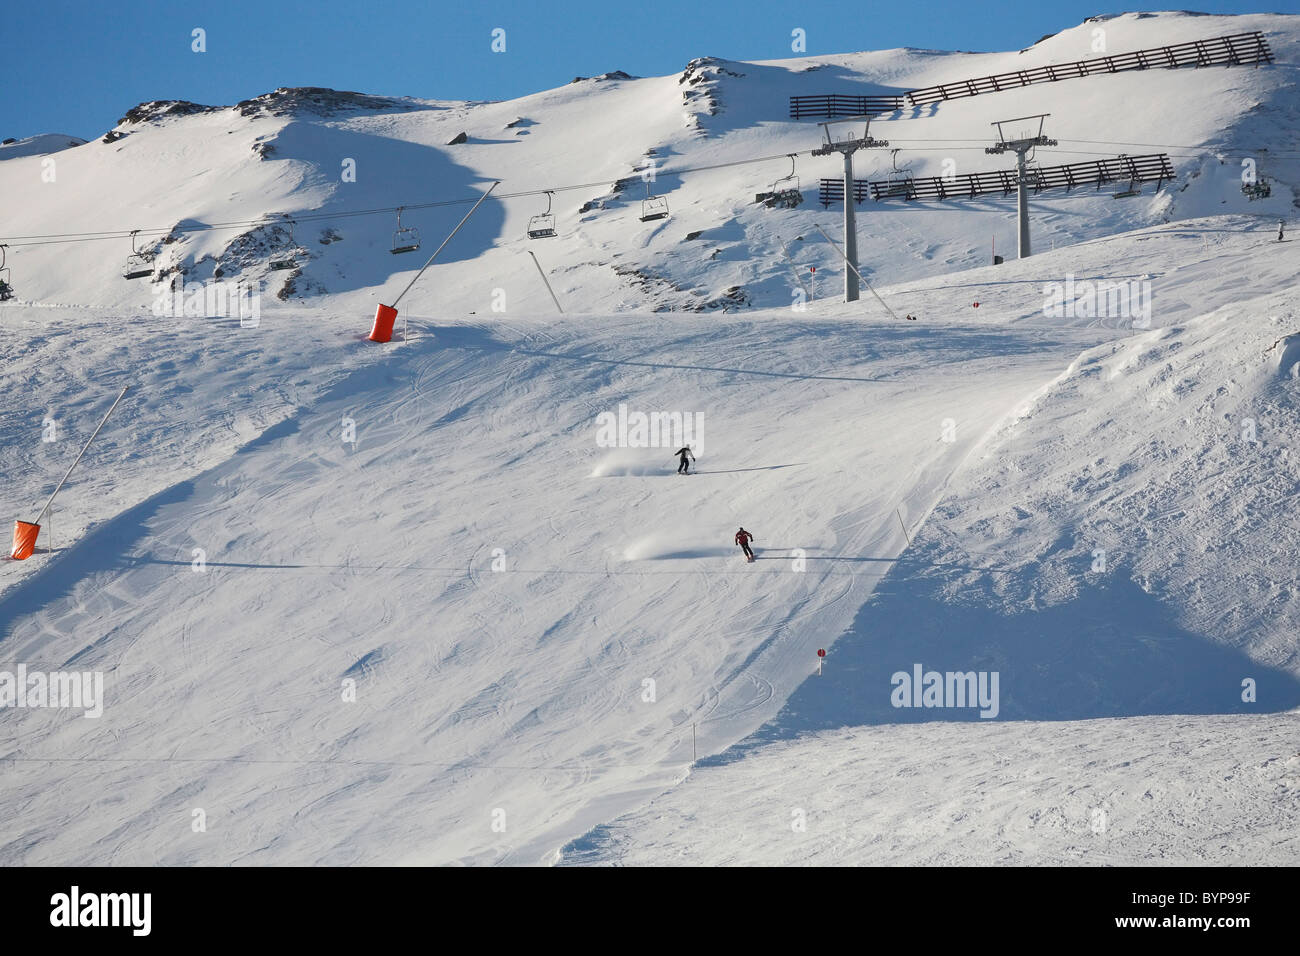 Skiing on the hill at Hochzillertal Arena, Austria, Europe - Stock Image